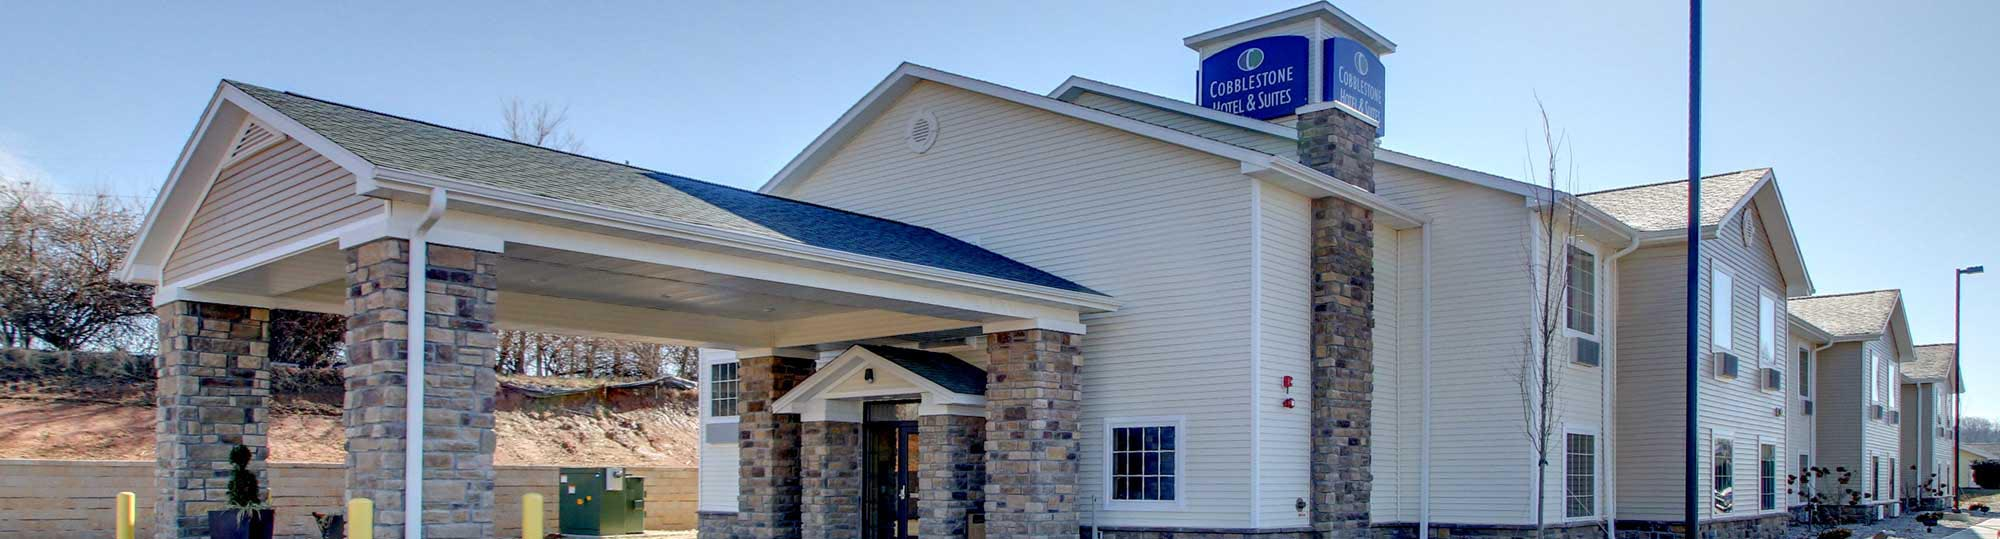 Cobblestone Hotel and Suites Killdeer